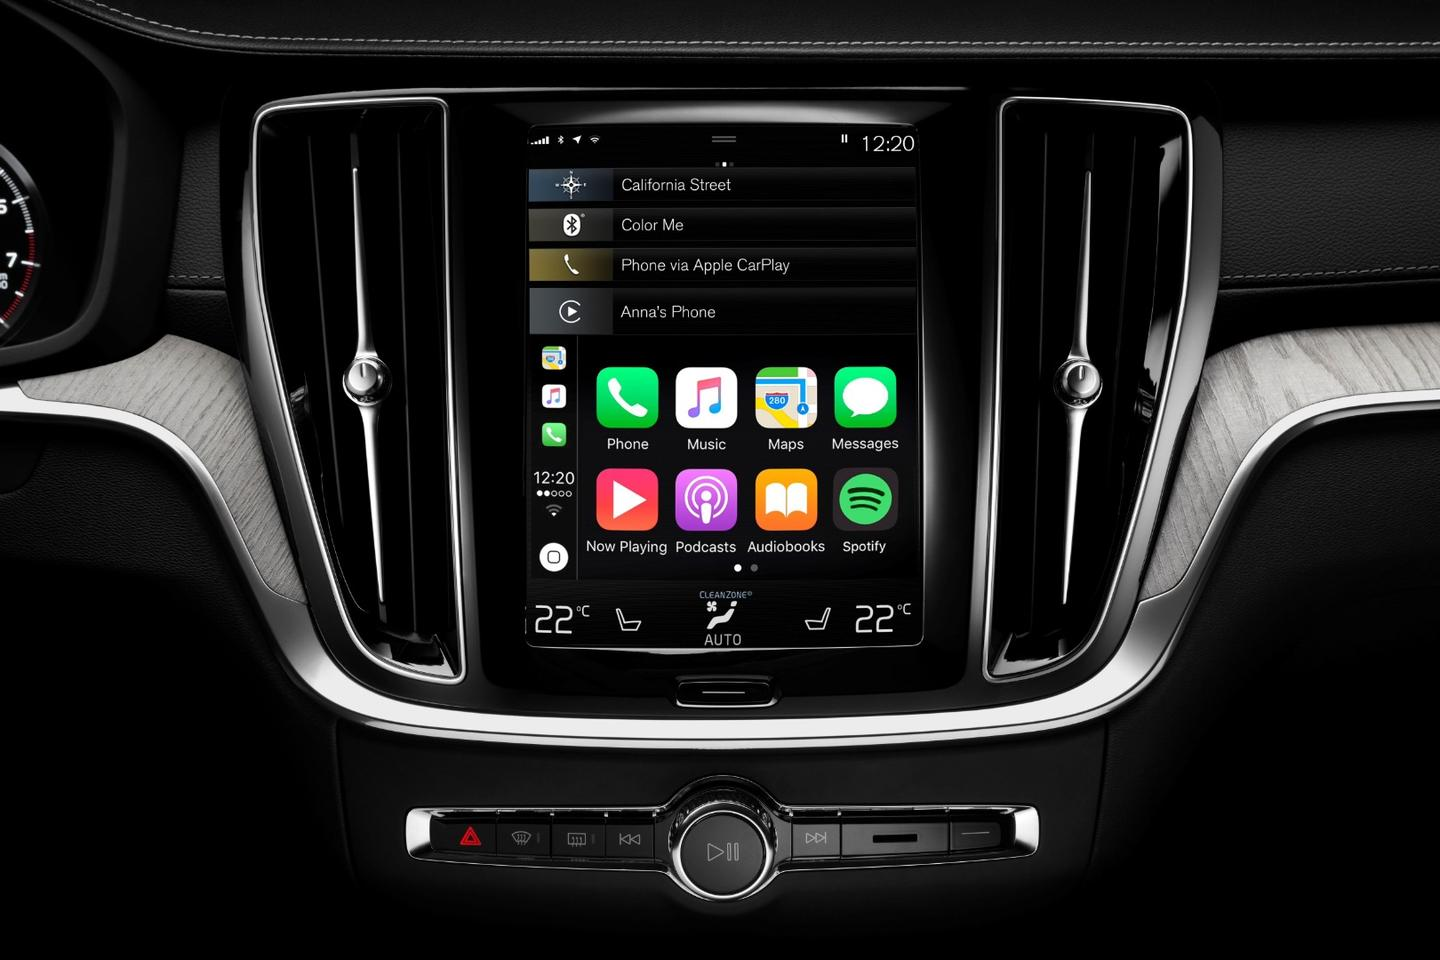 Volvo's Sensus Connect infotainment system features a tall, tablet-style touchscreen